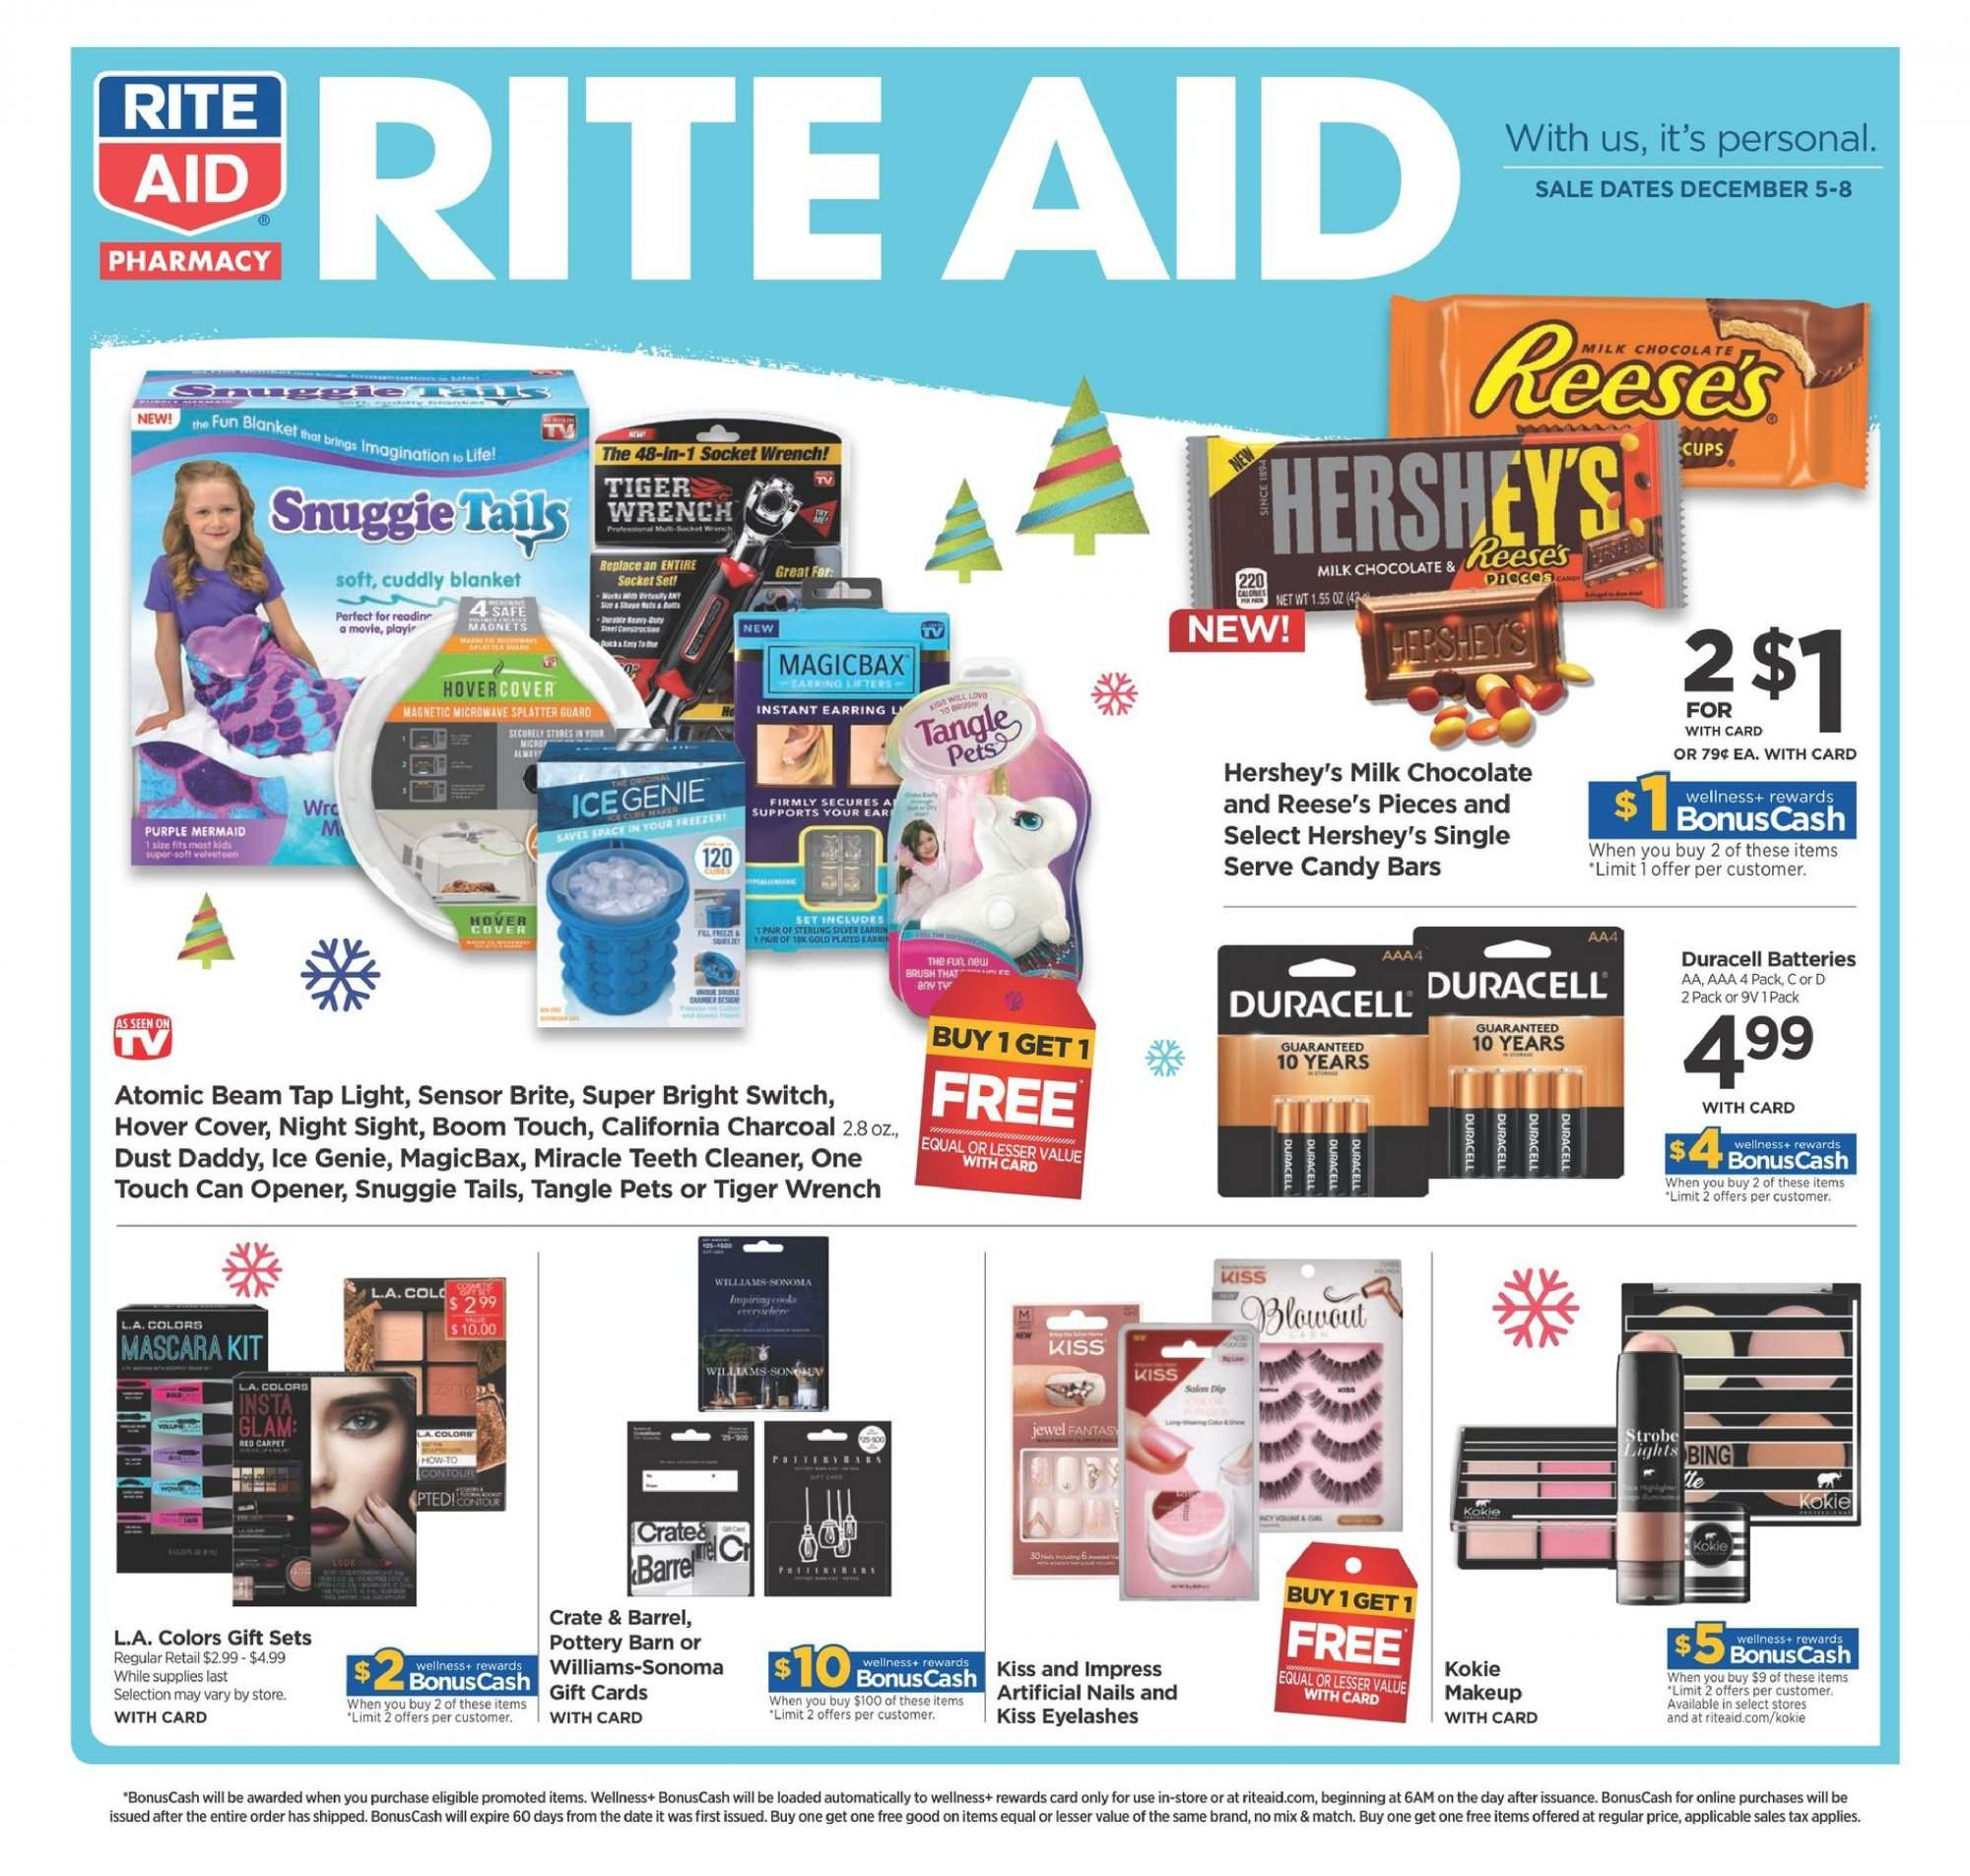 RITE AID Flyer  - 12.05.2018 - 12.08.2018. Page 1.